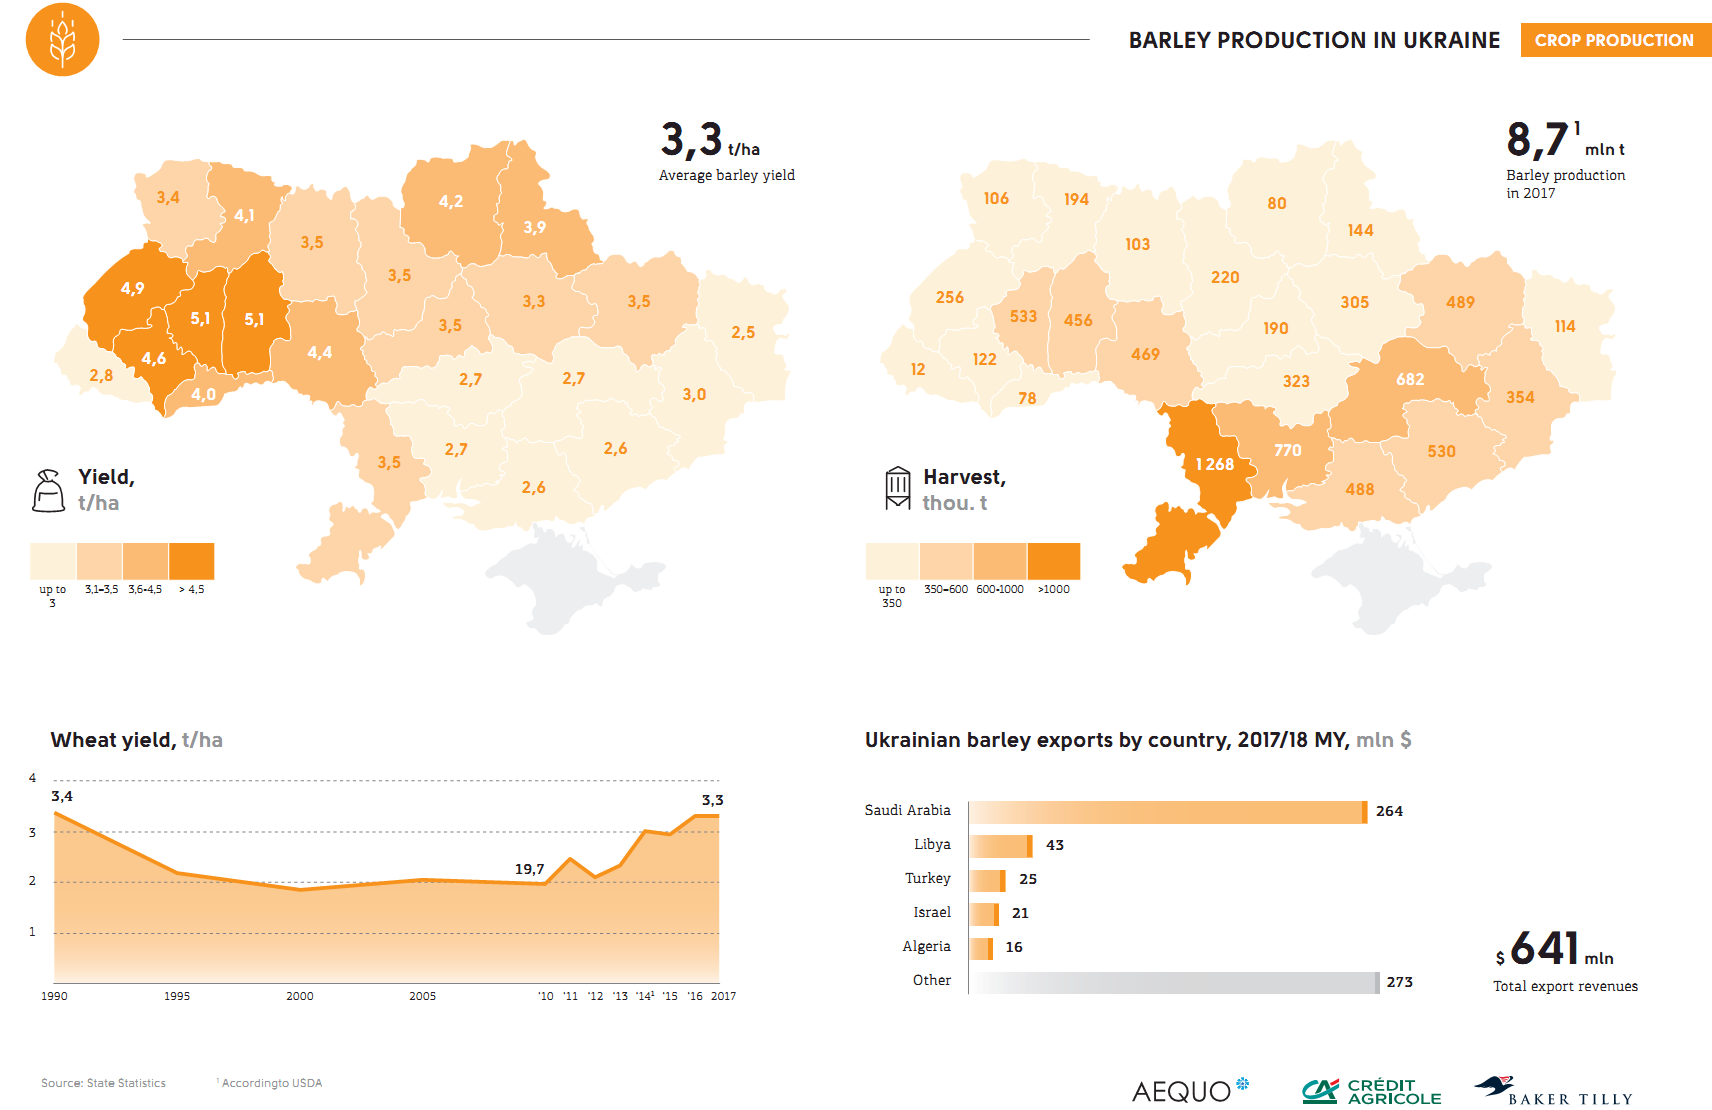 Barley production in Ukraine (click for full resolution)